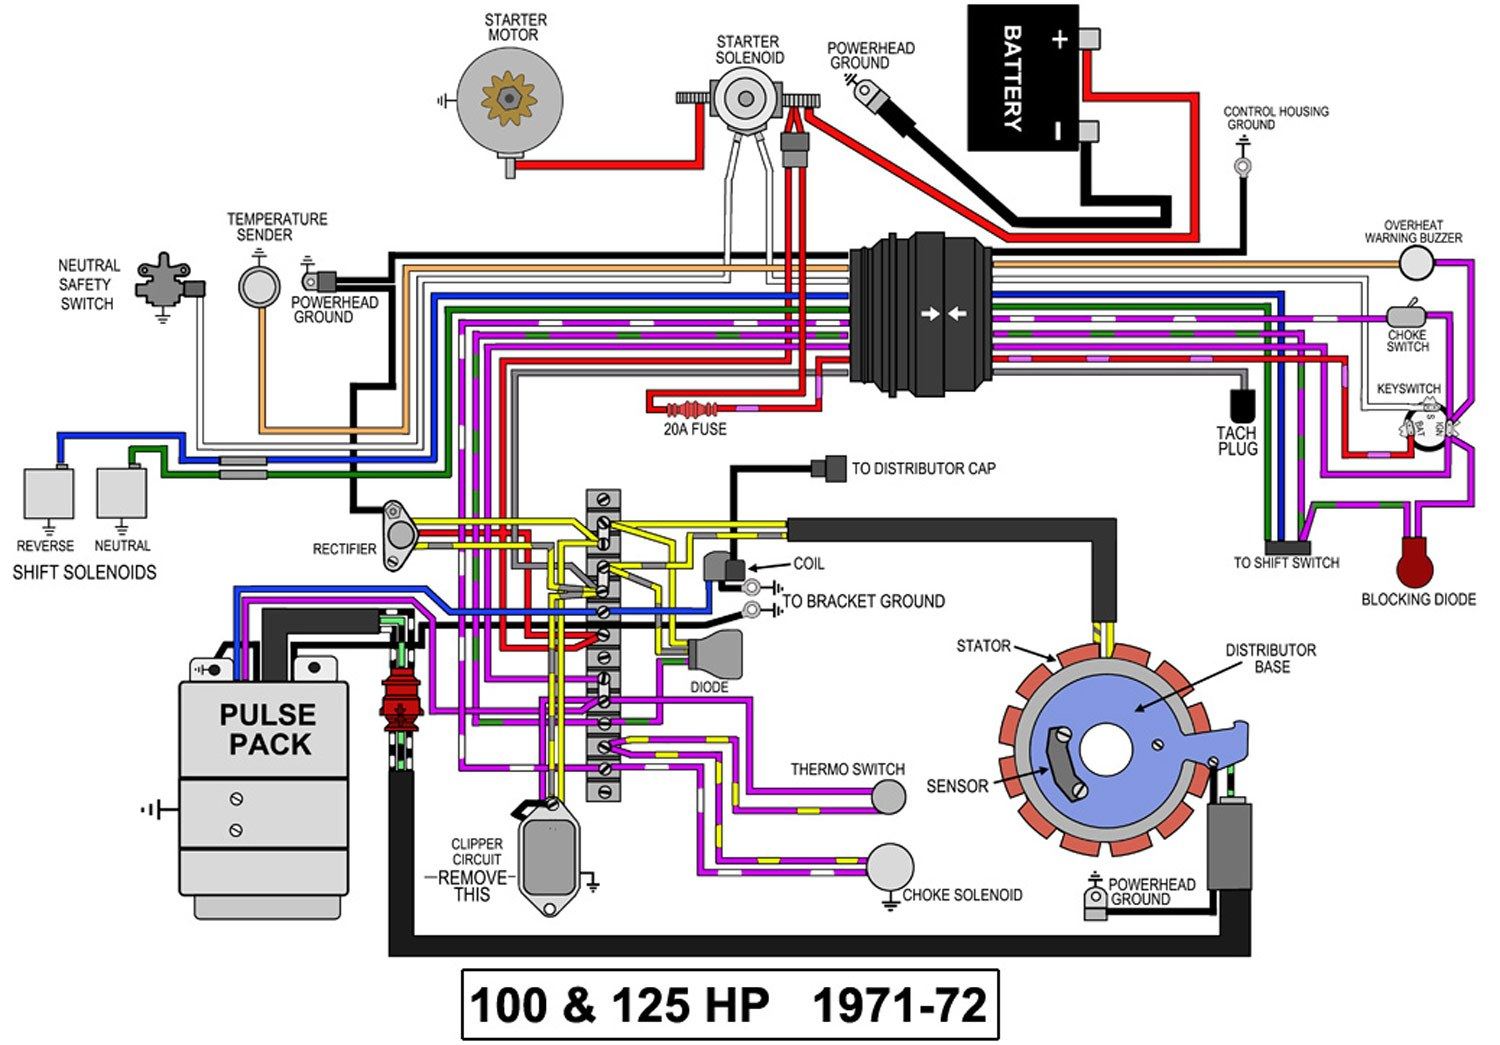 EW_1182] Honda Outboard Ignition Switch Wiring Diagram Wiring DiagramOgeno Licuk Oidei Trons Mohammedshrine Librar Wiring 101